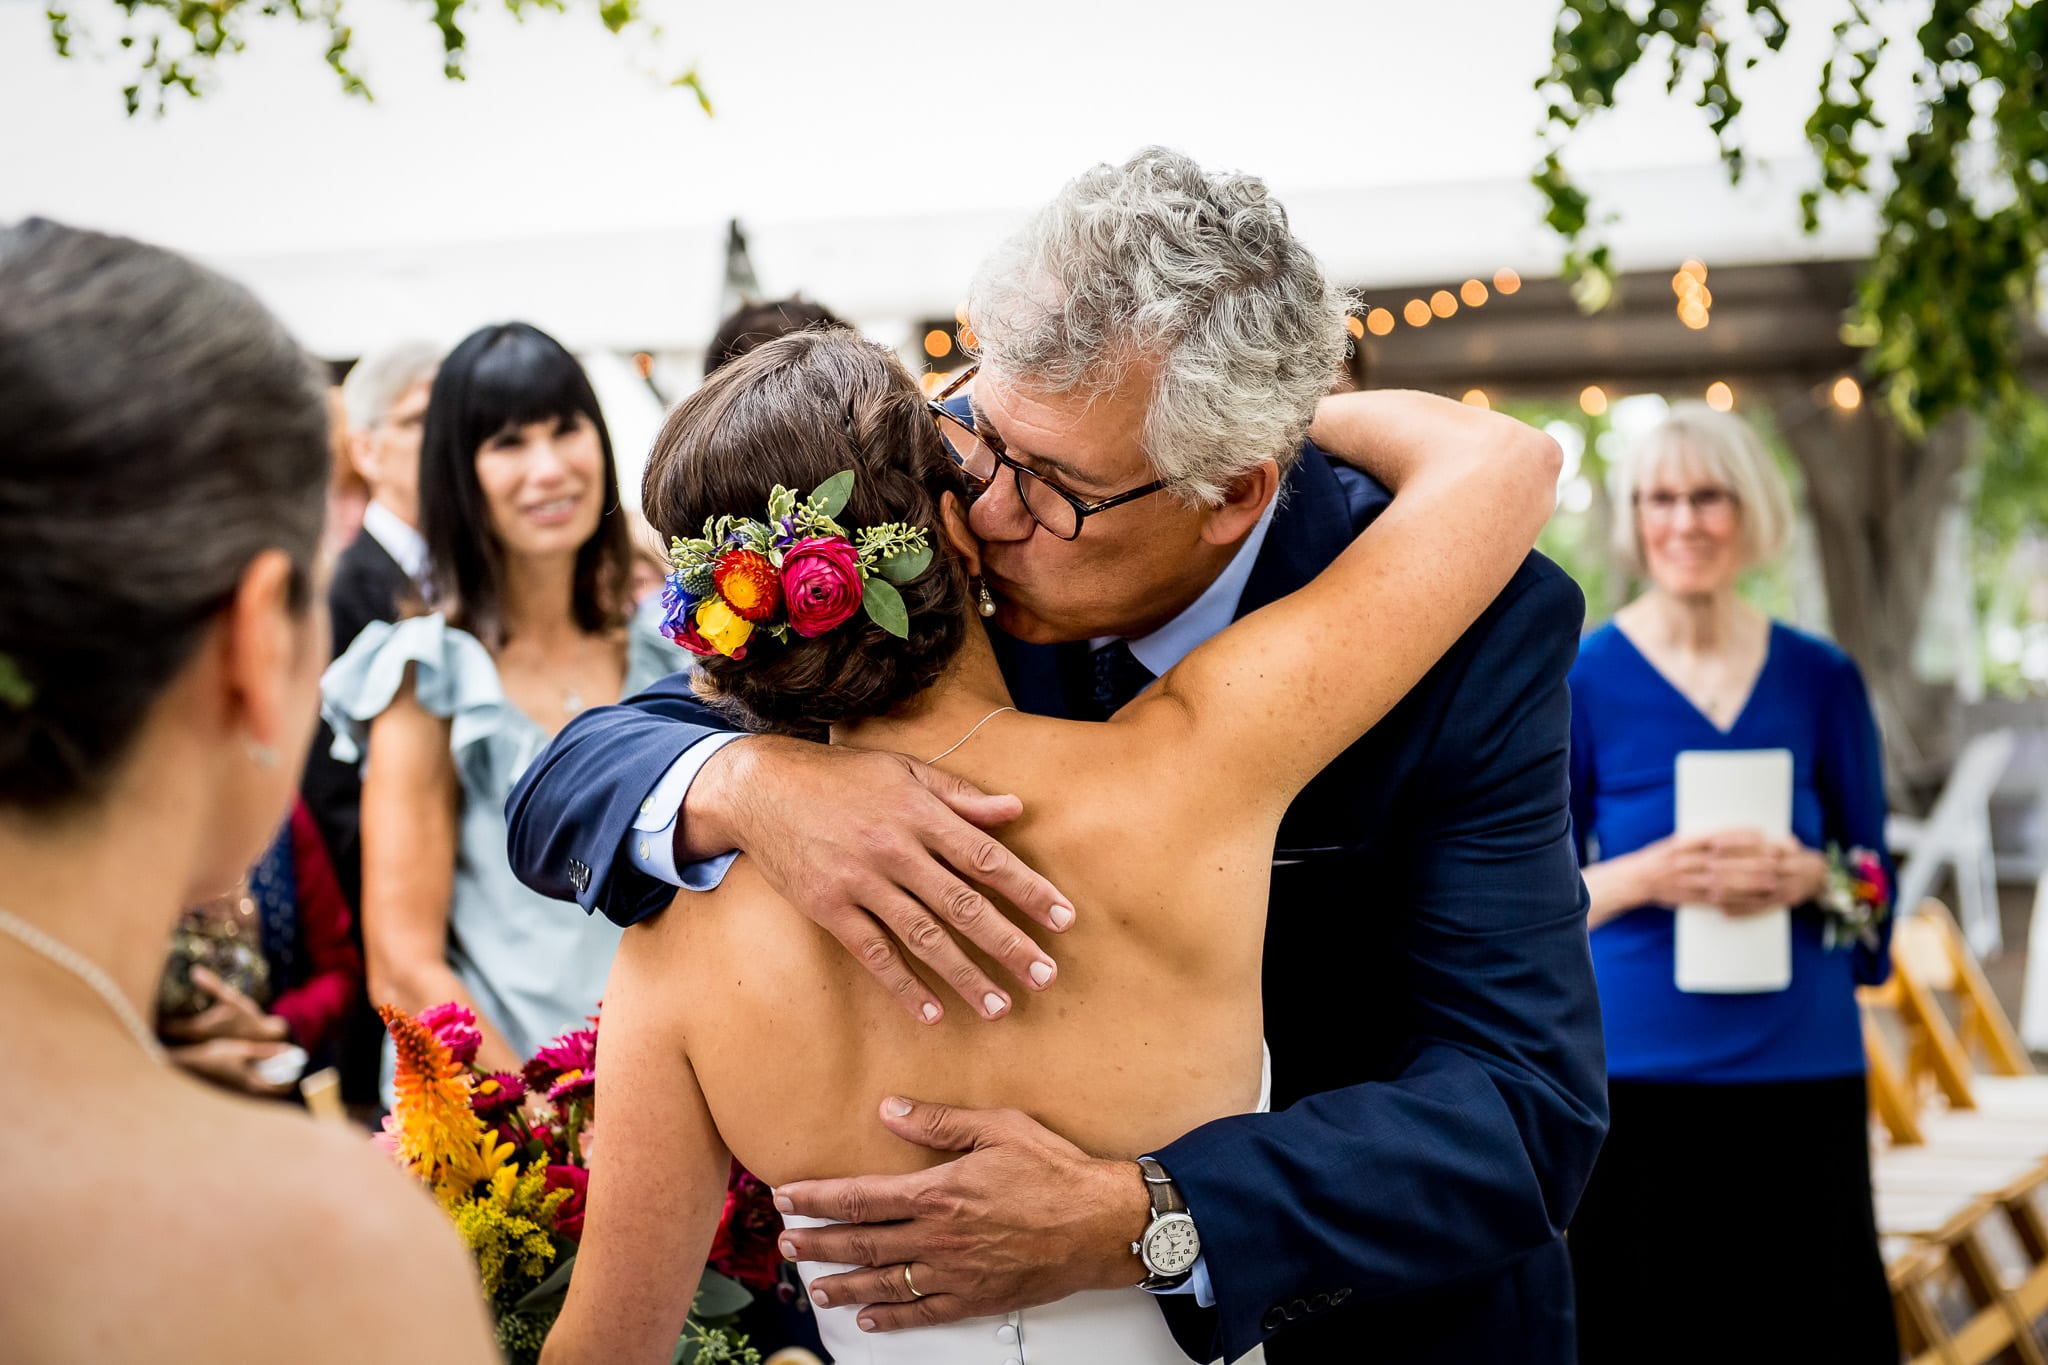 Father of the bride hugs his daughter as he hands her off to be married